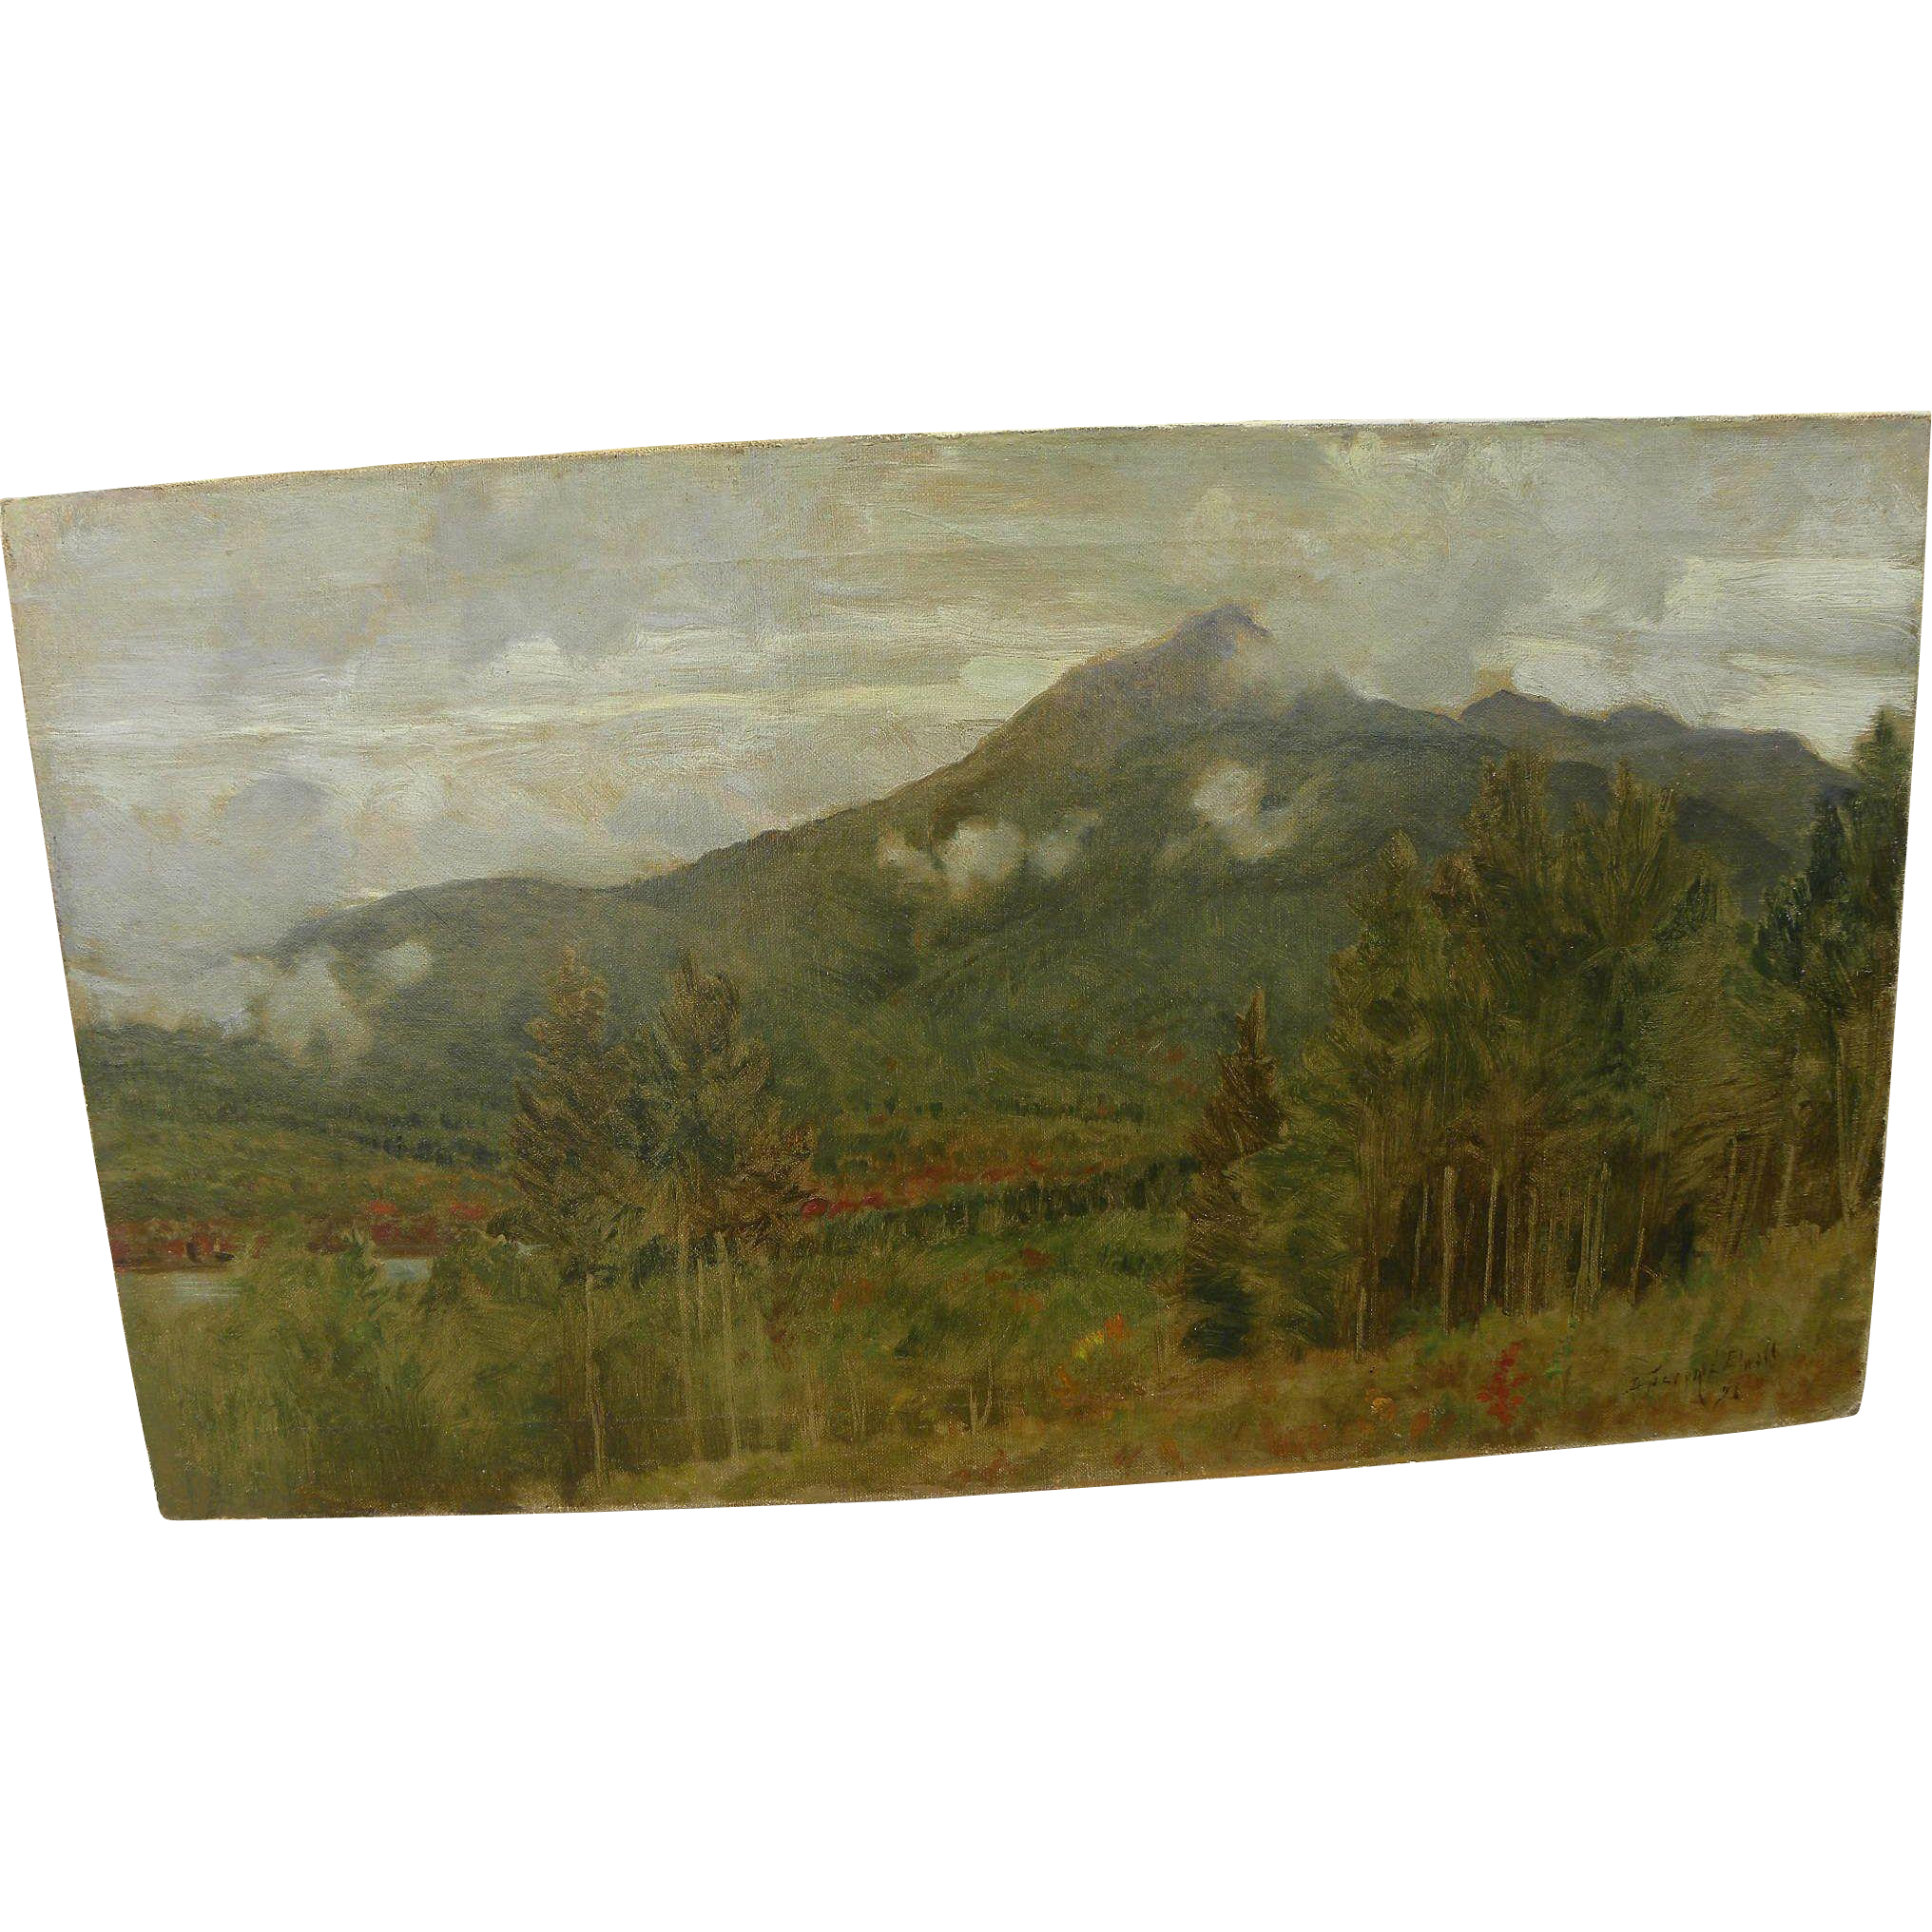 D. JEROME ELWELL (1847-1912) impressionist landscape oil painting of mountains by noted Massachusetts artist